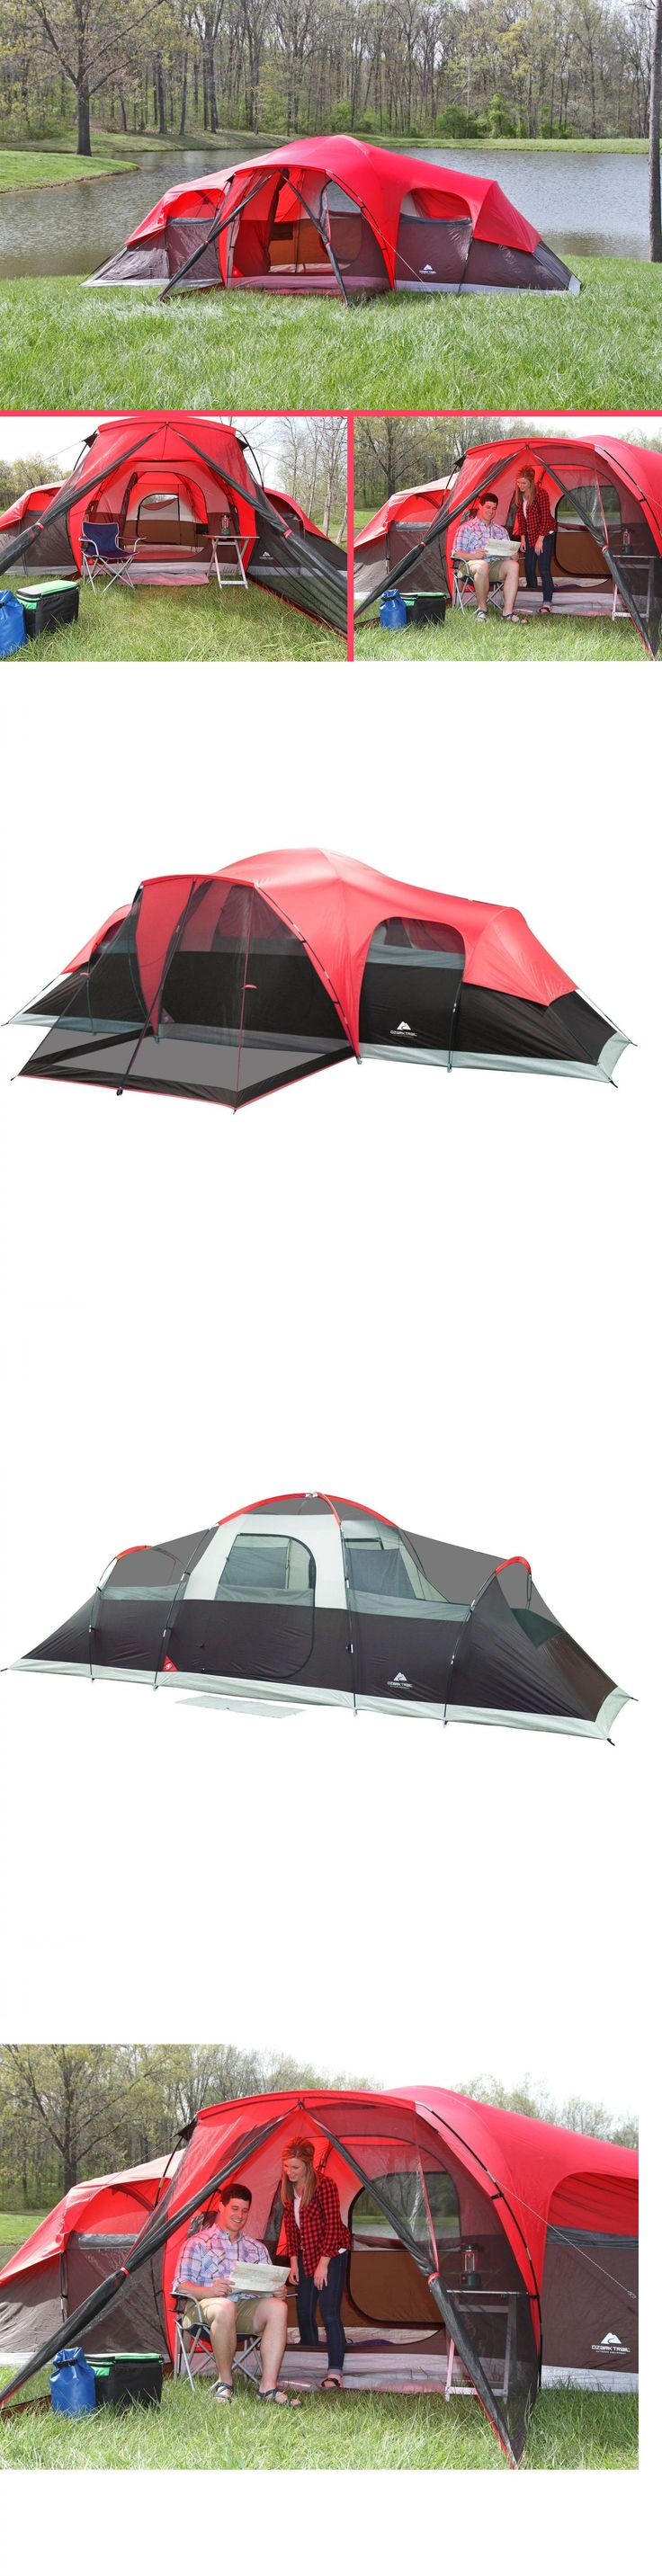 Tents 179010 ozark trail 10 person family tent outdoor camping hiking instant cabin shelter